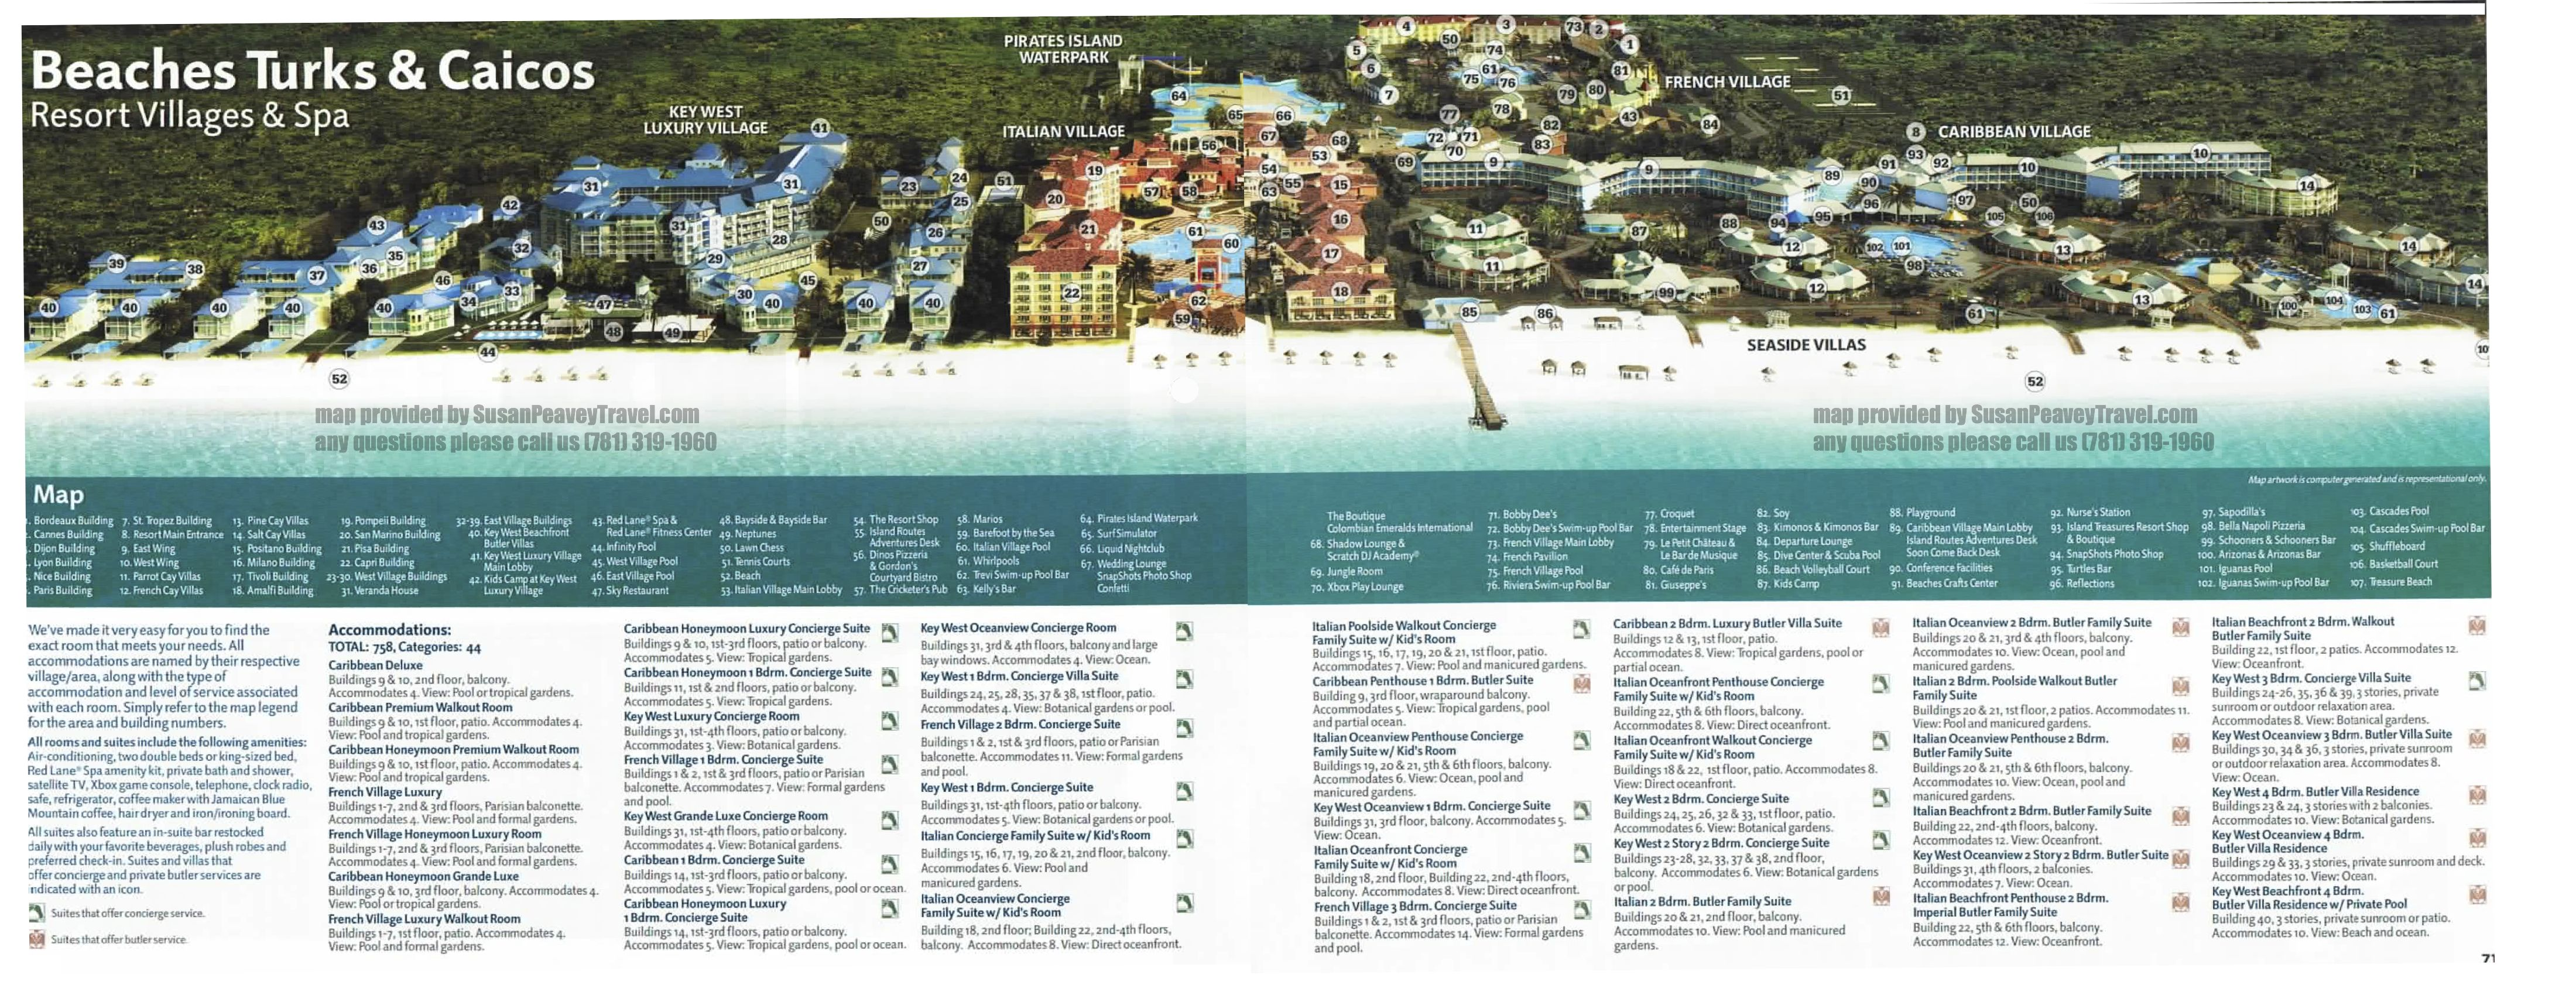 Resort Map For Beaches Turks Caicos Resort With Images